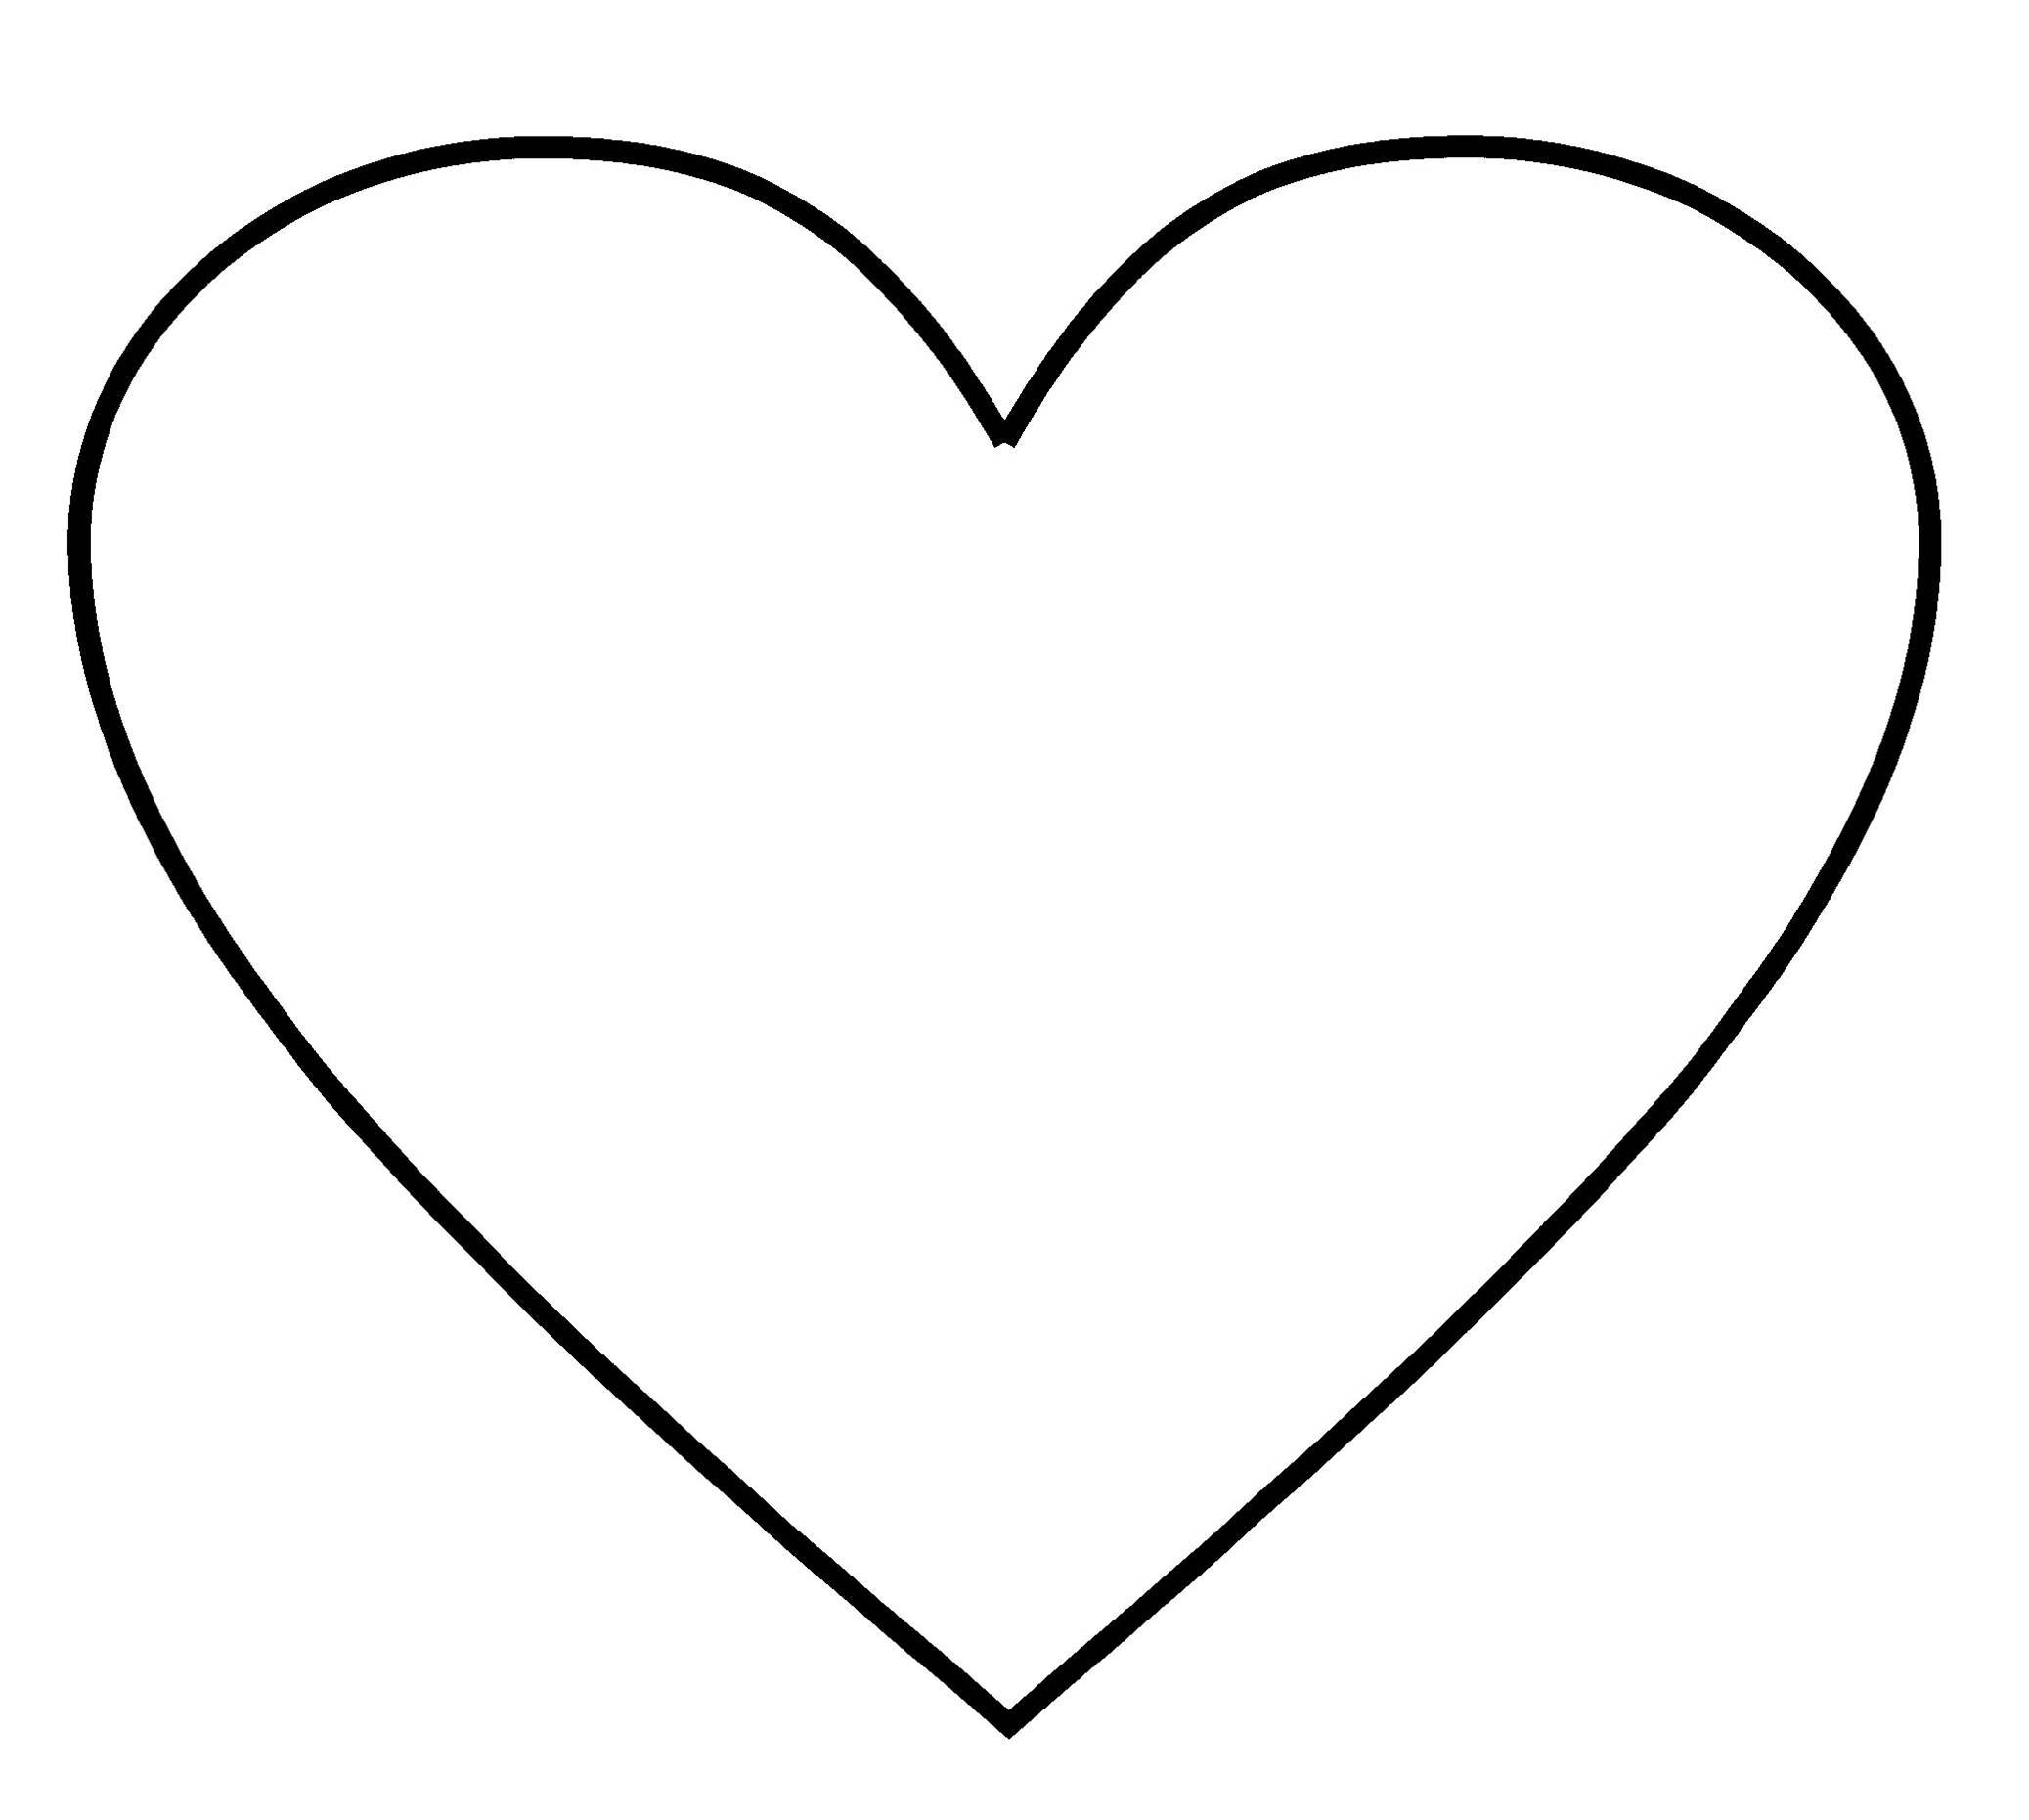 It's just a photo of Terrible Large Heart Template Printable